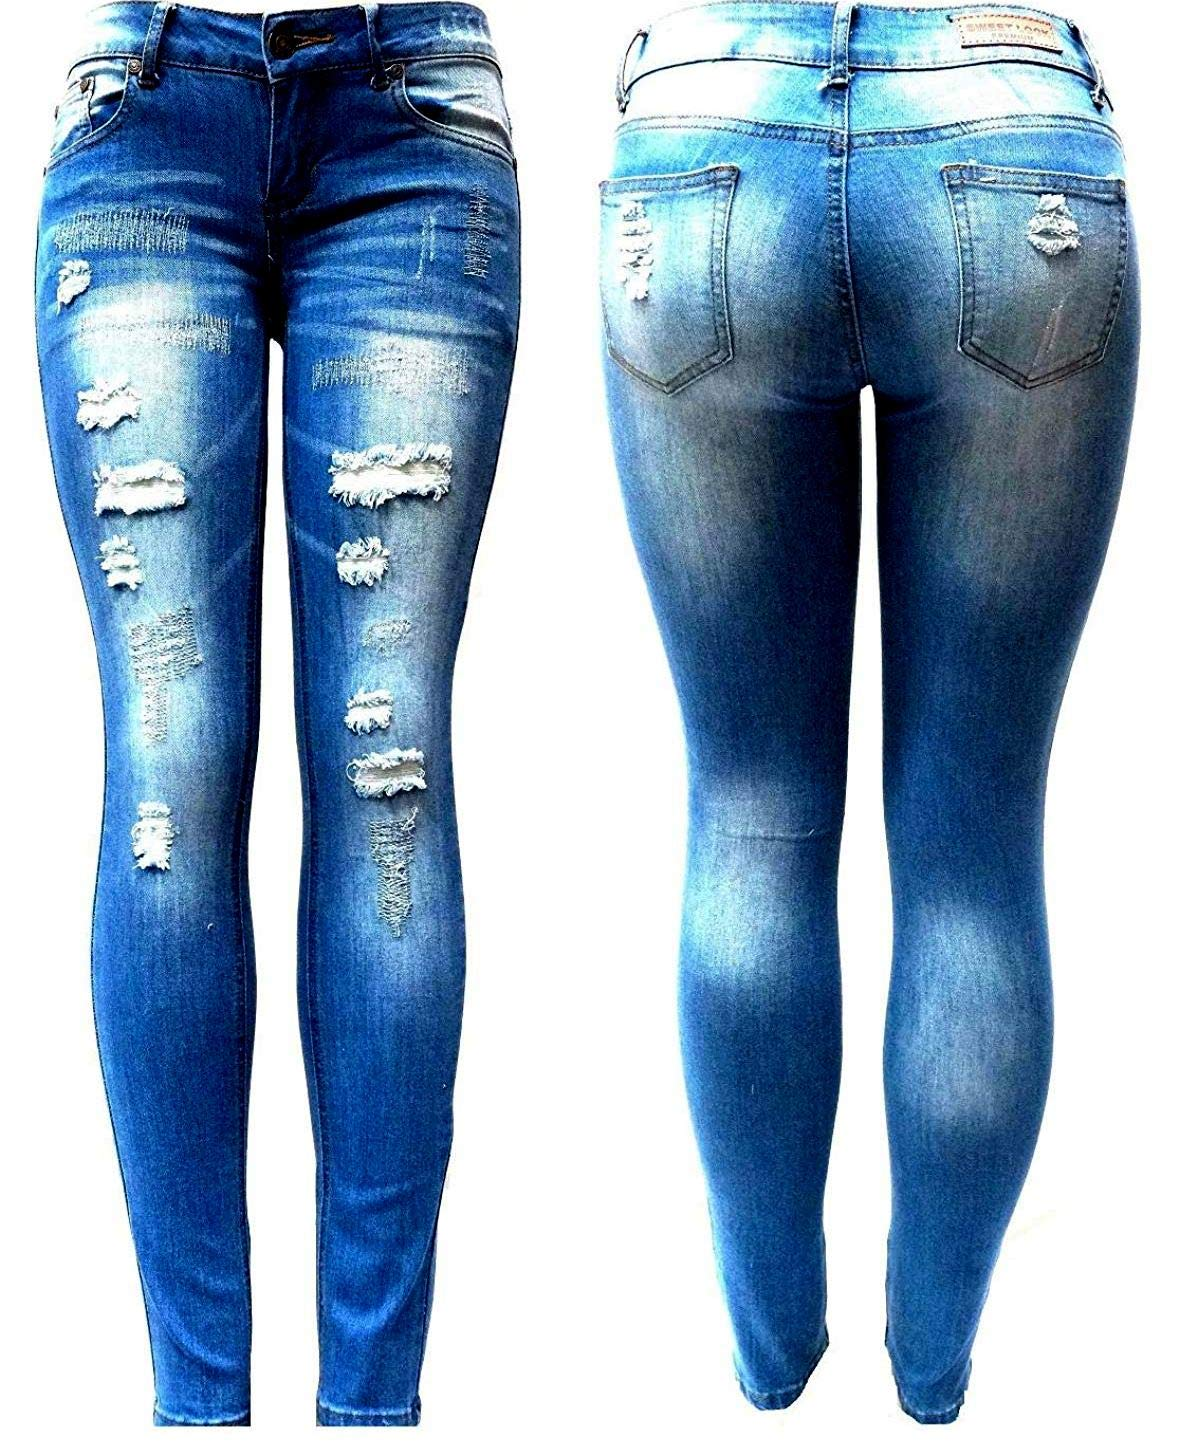 SWEET LOOK BLUE Denim Stretch JEANS Destroy Skinny Ripped Distressed Pants